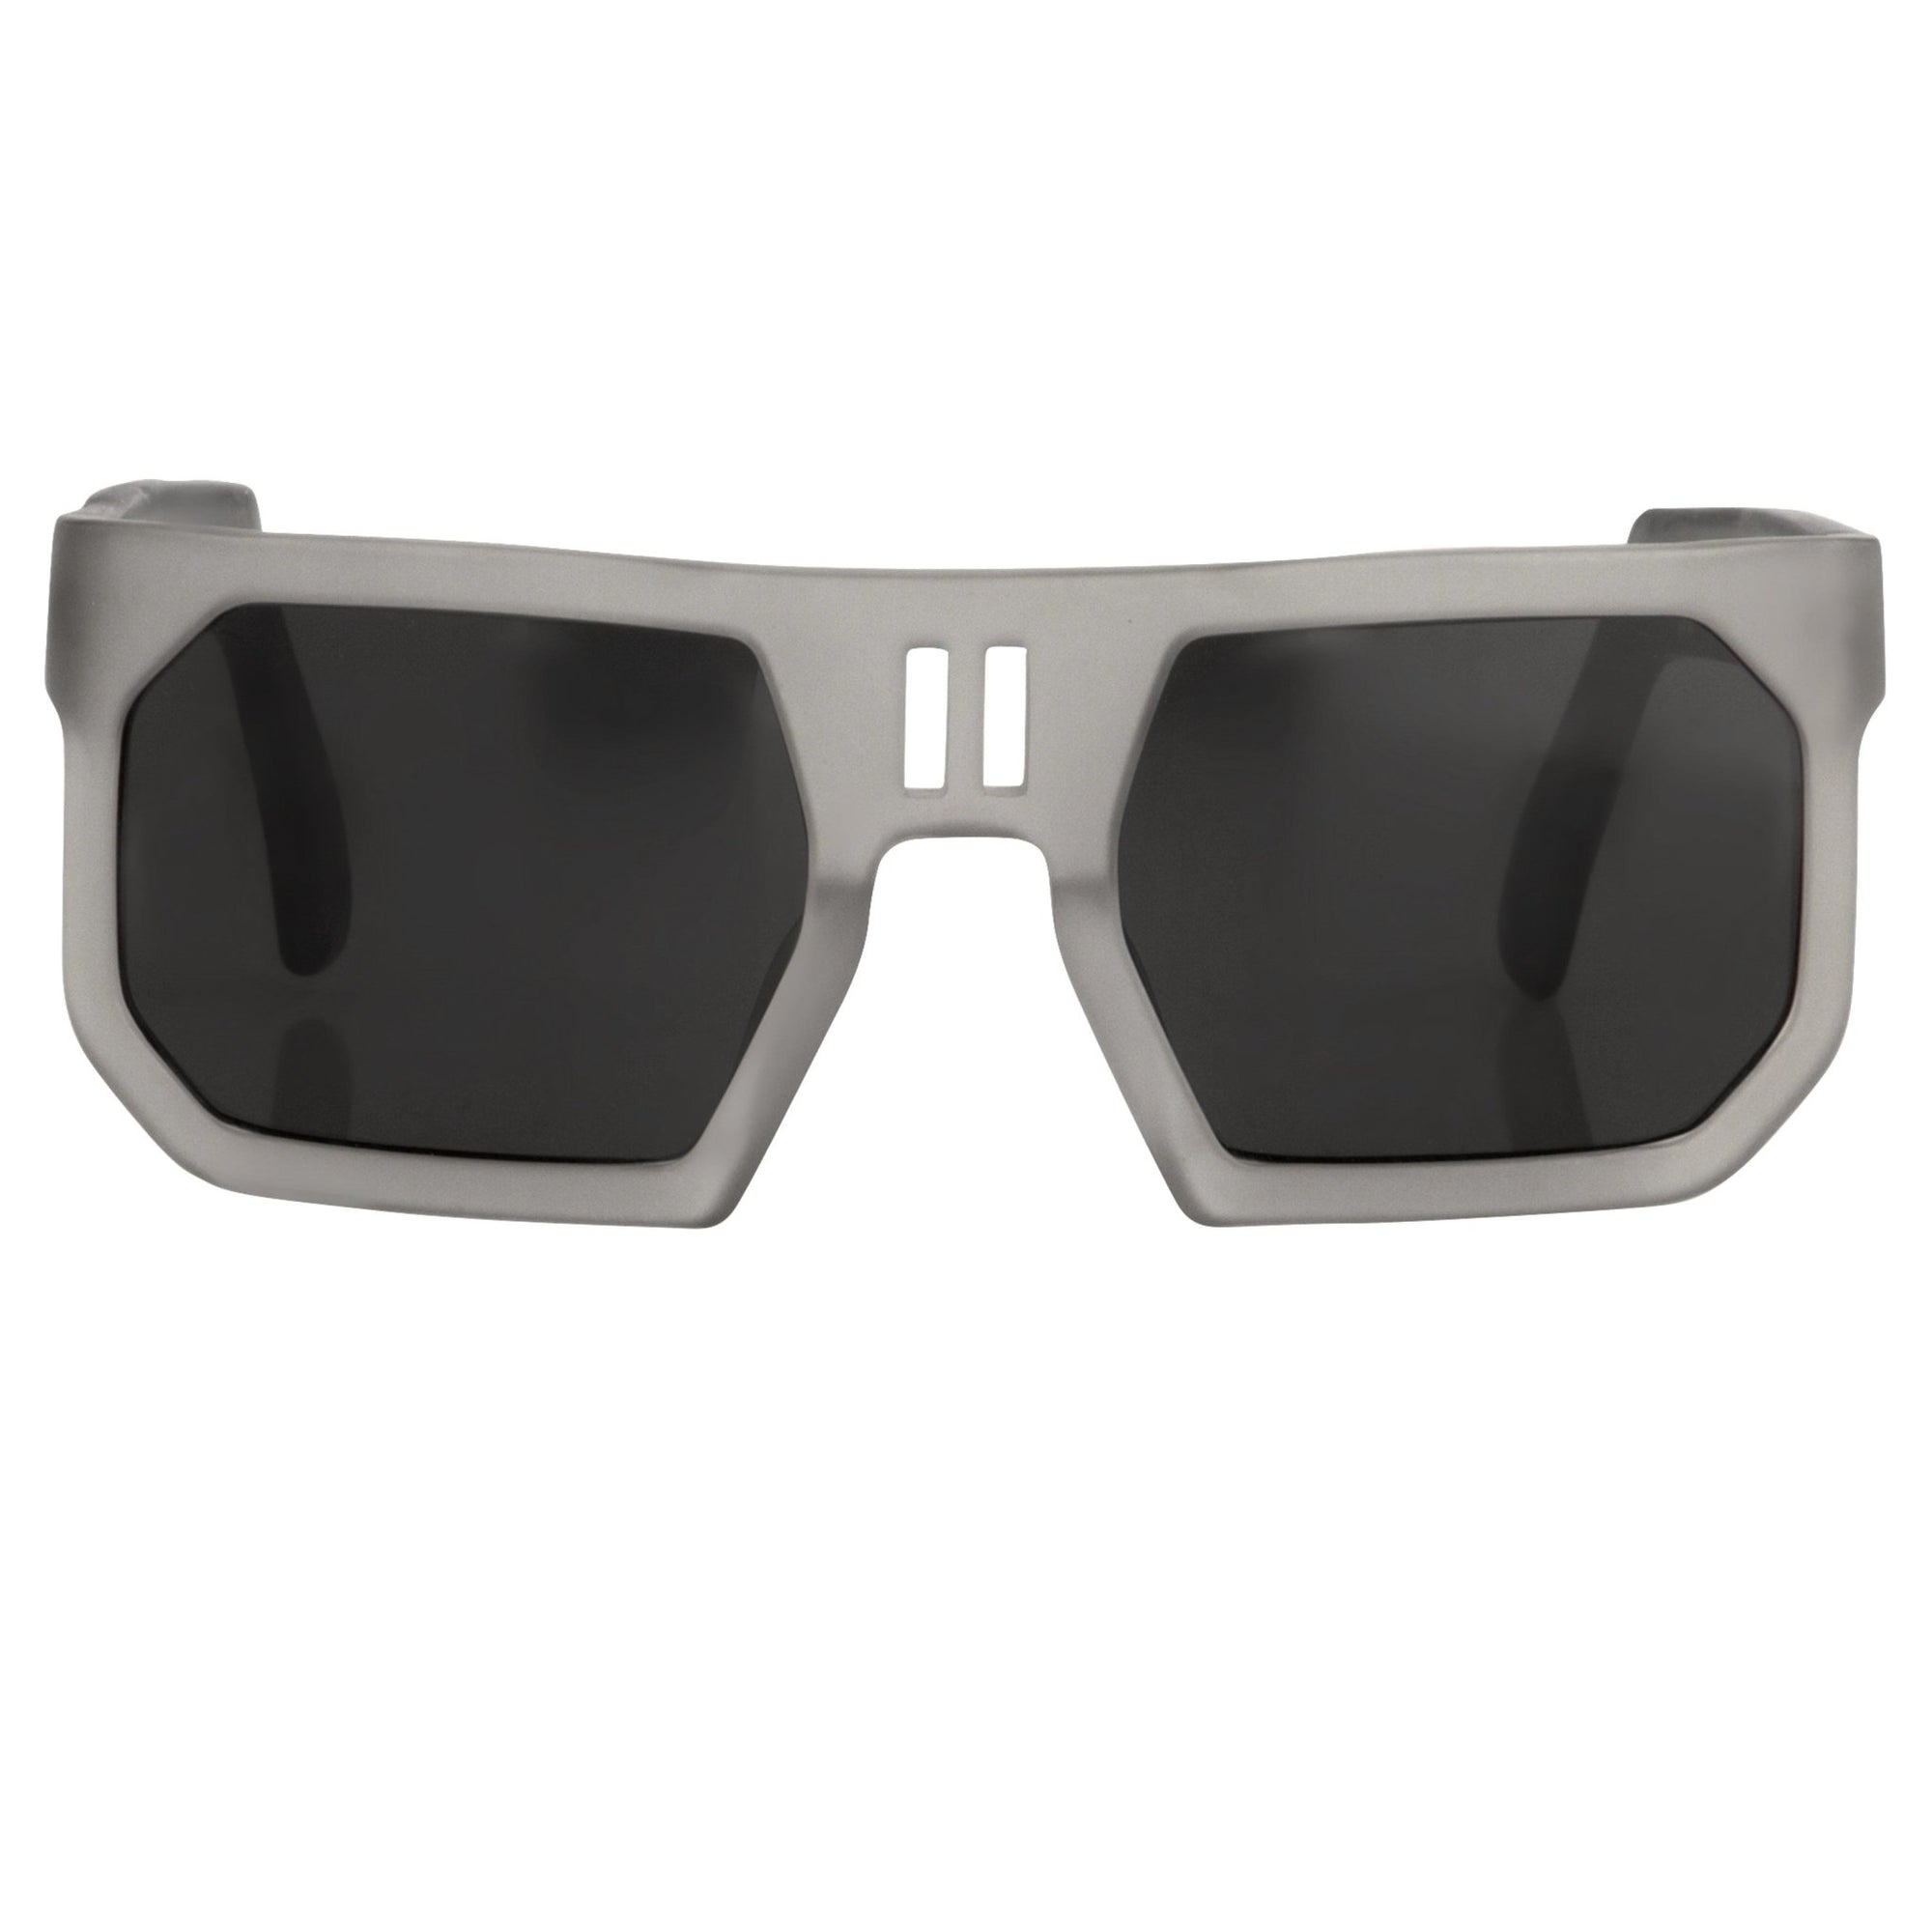 Boris Bidjan Saberi Sunglasses Rectangular Transparent Pewter With Grey Category 3 Lenses BBS1C3SUN - Watches & Crystals